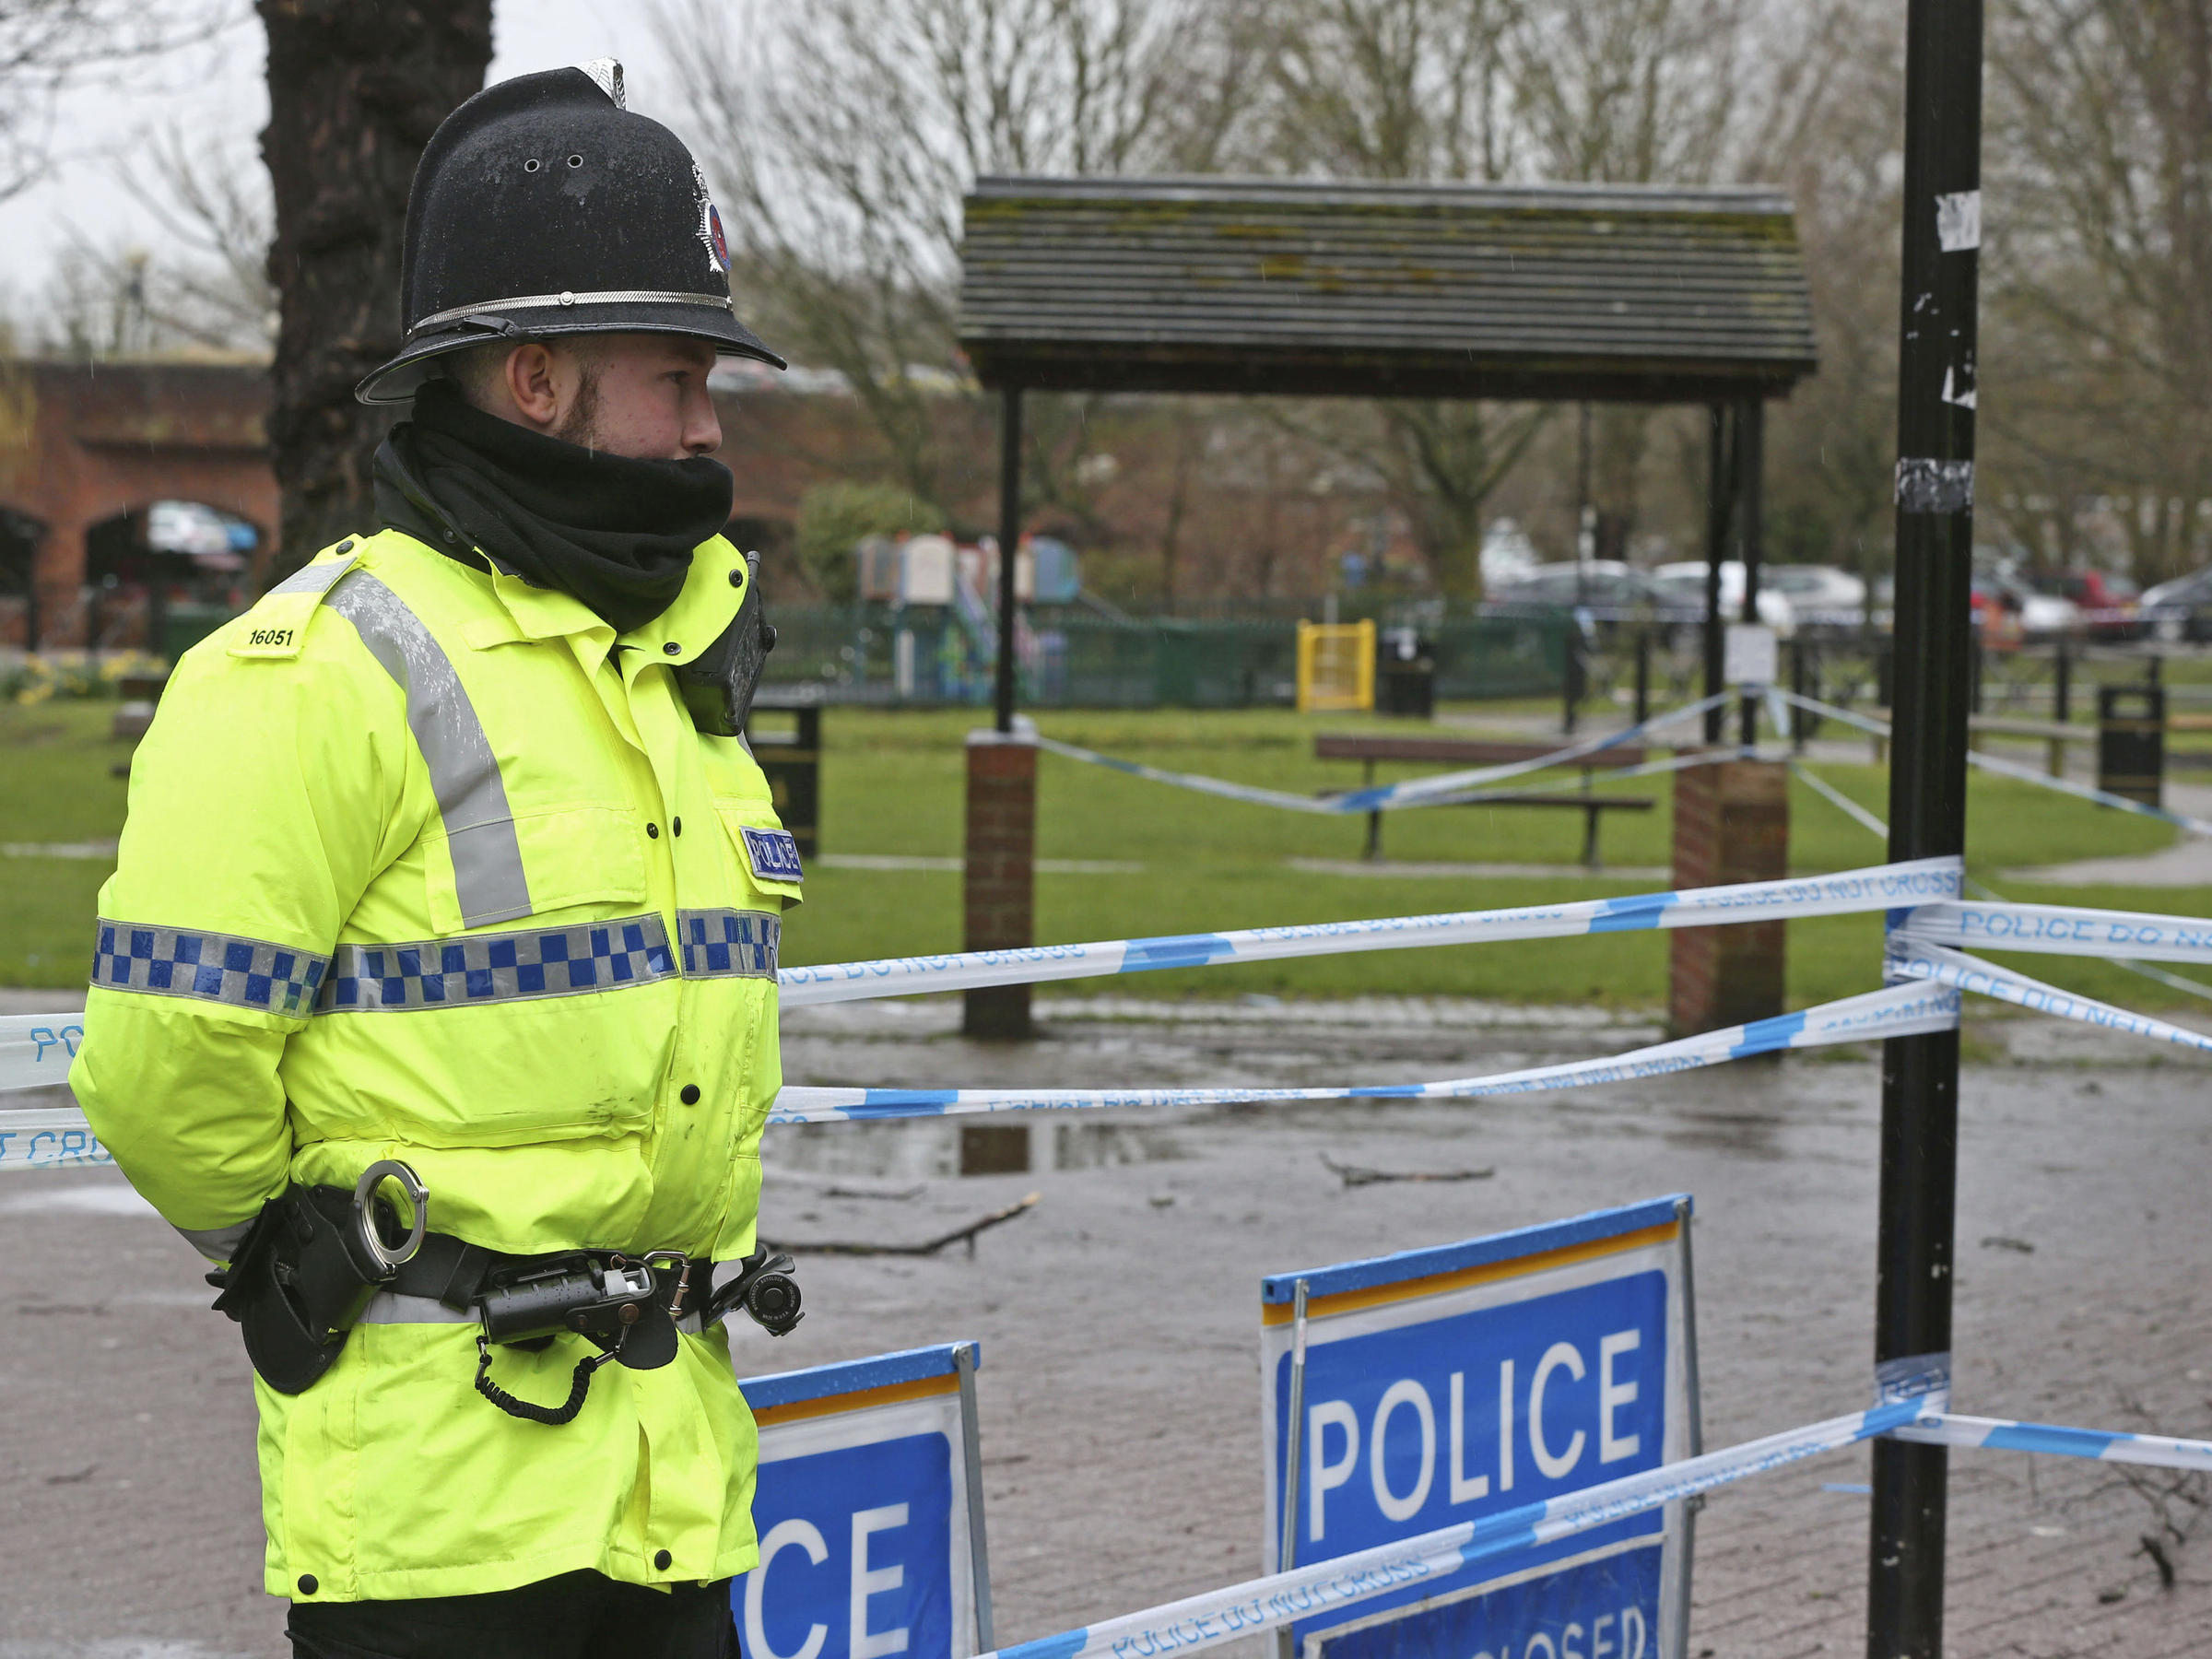 Amesbury poisoning: Experts begin testing for Novichok